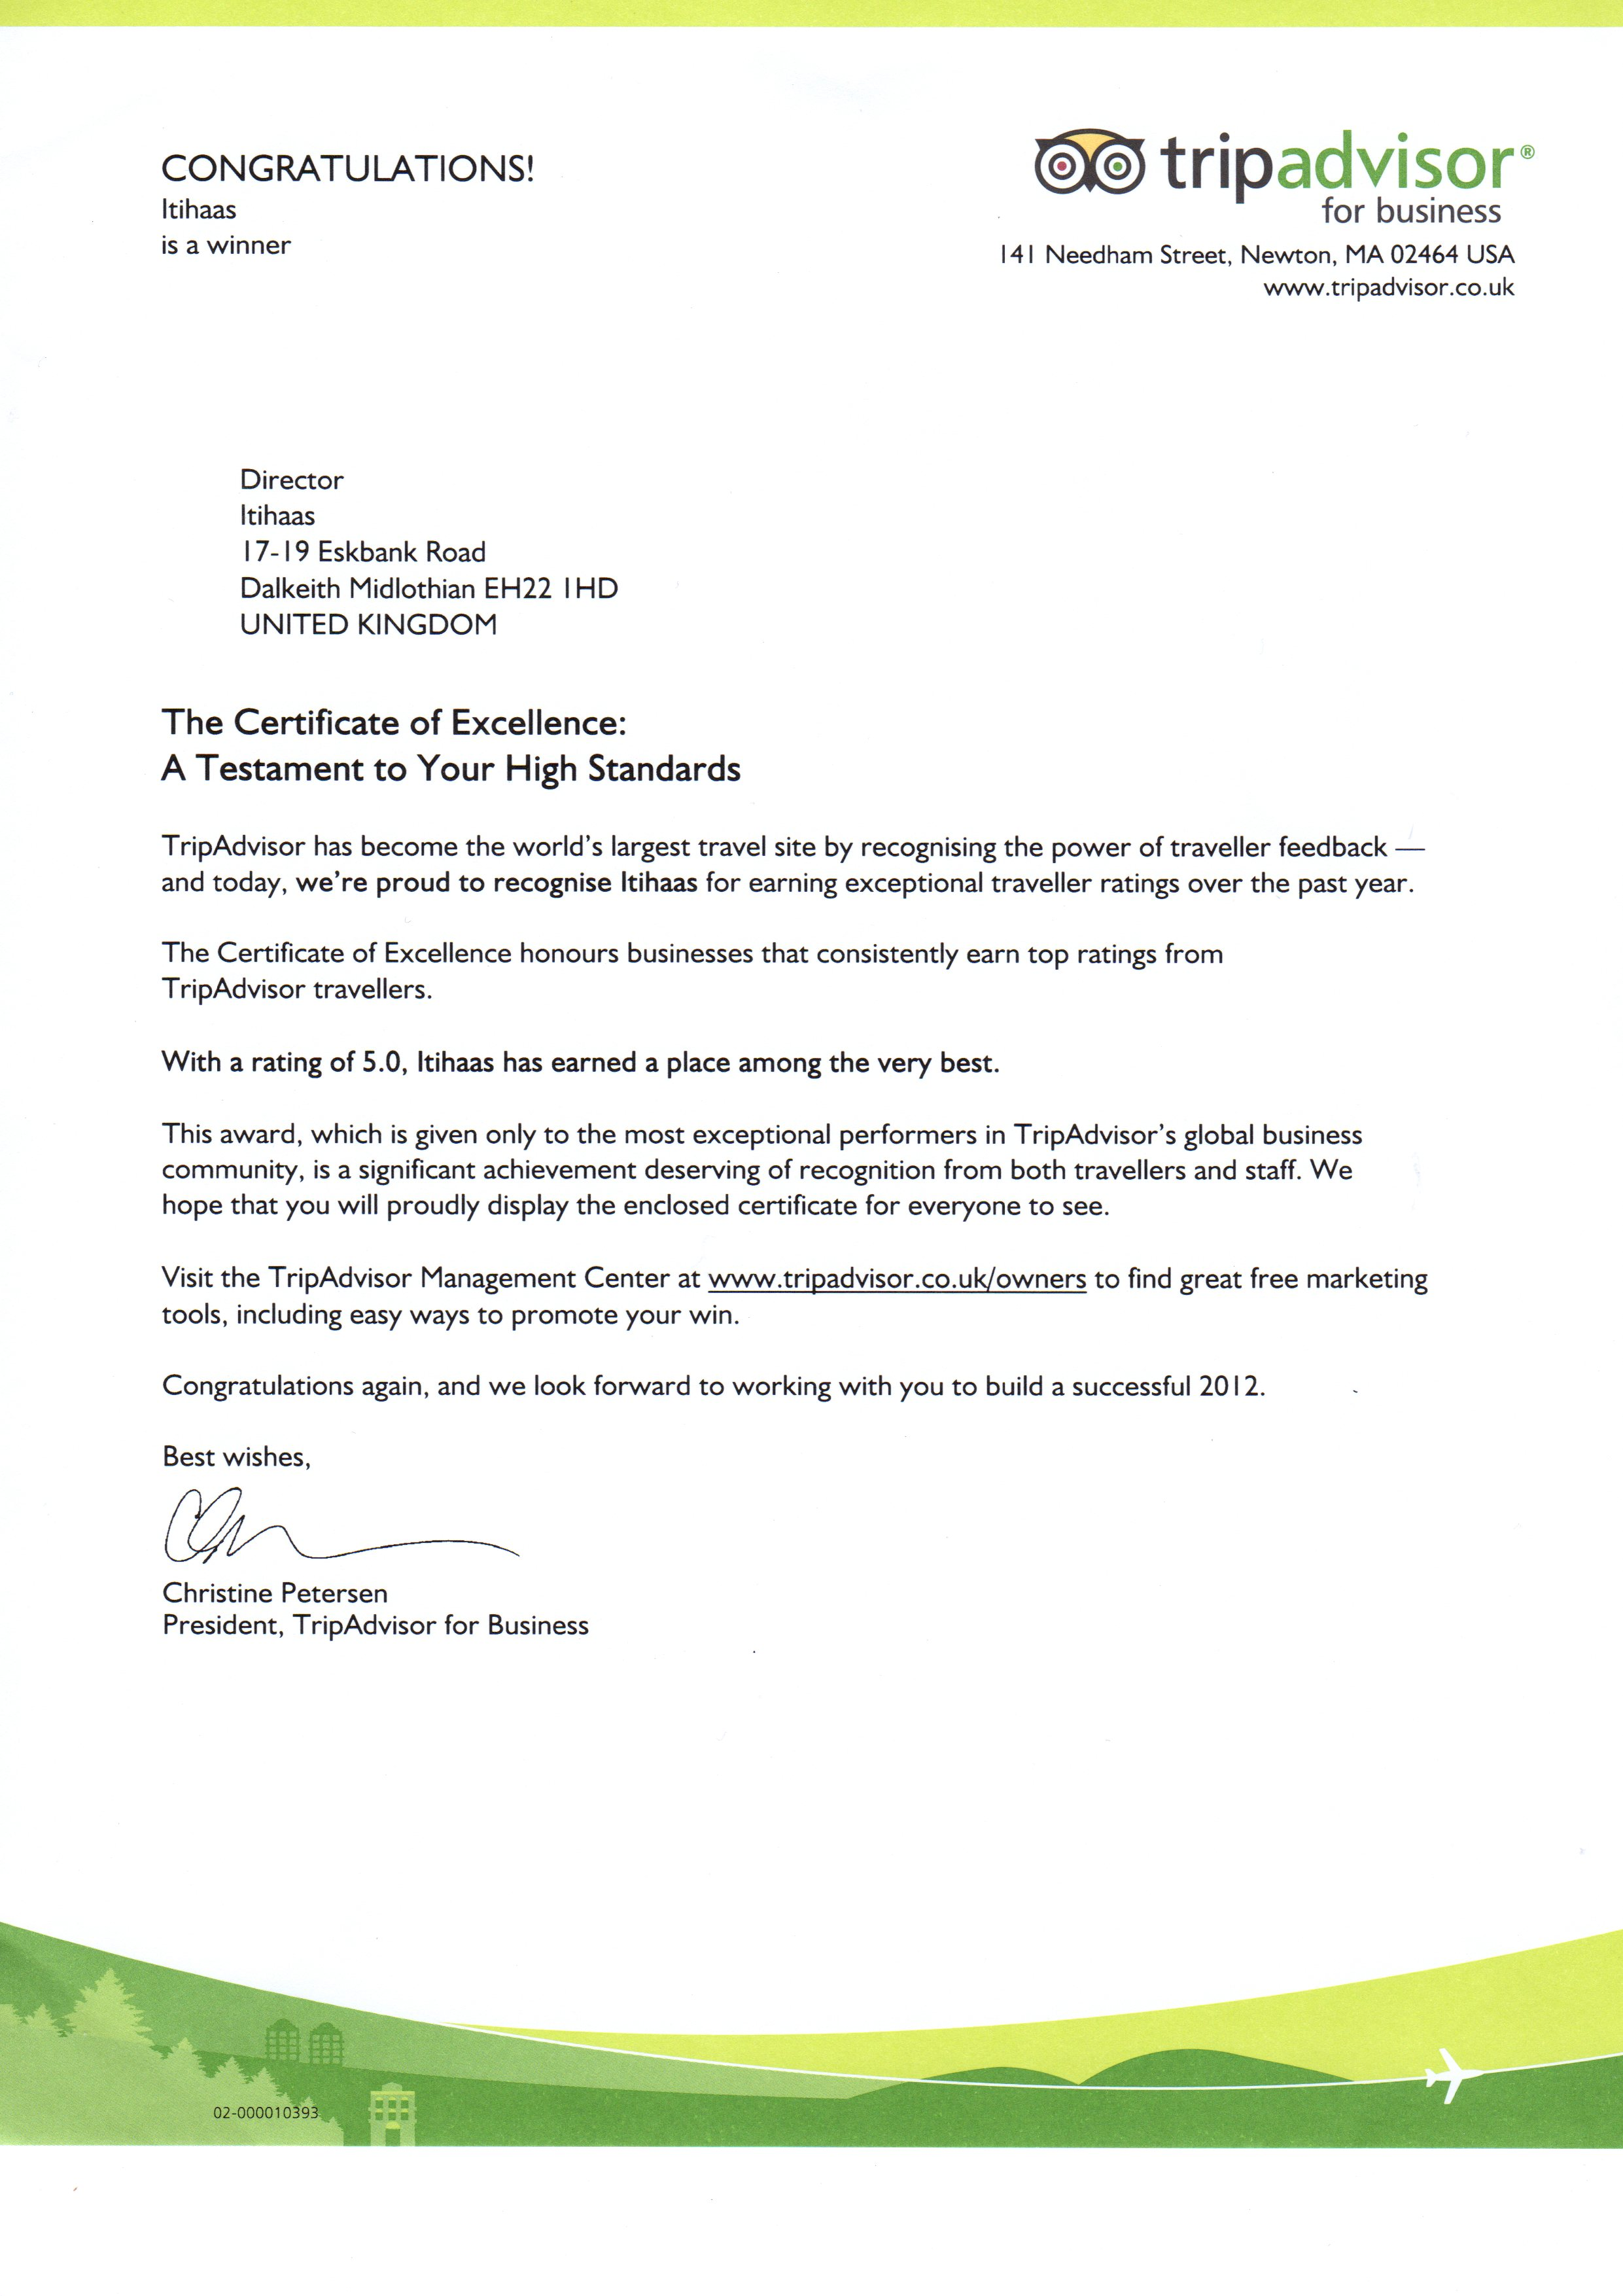 Our Latest Award Certificate And Letter From Trip Advisor